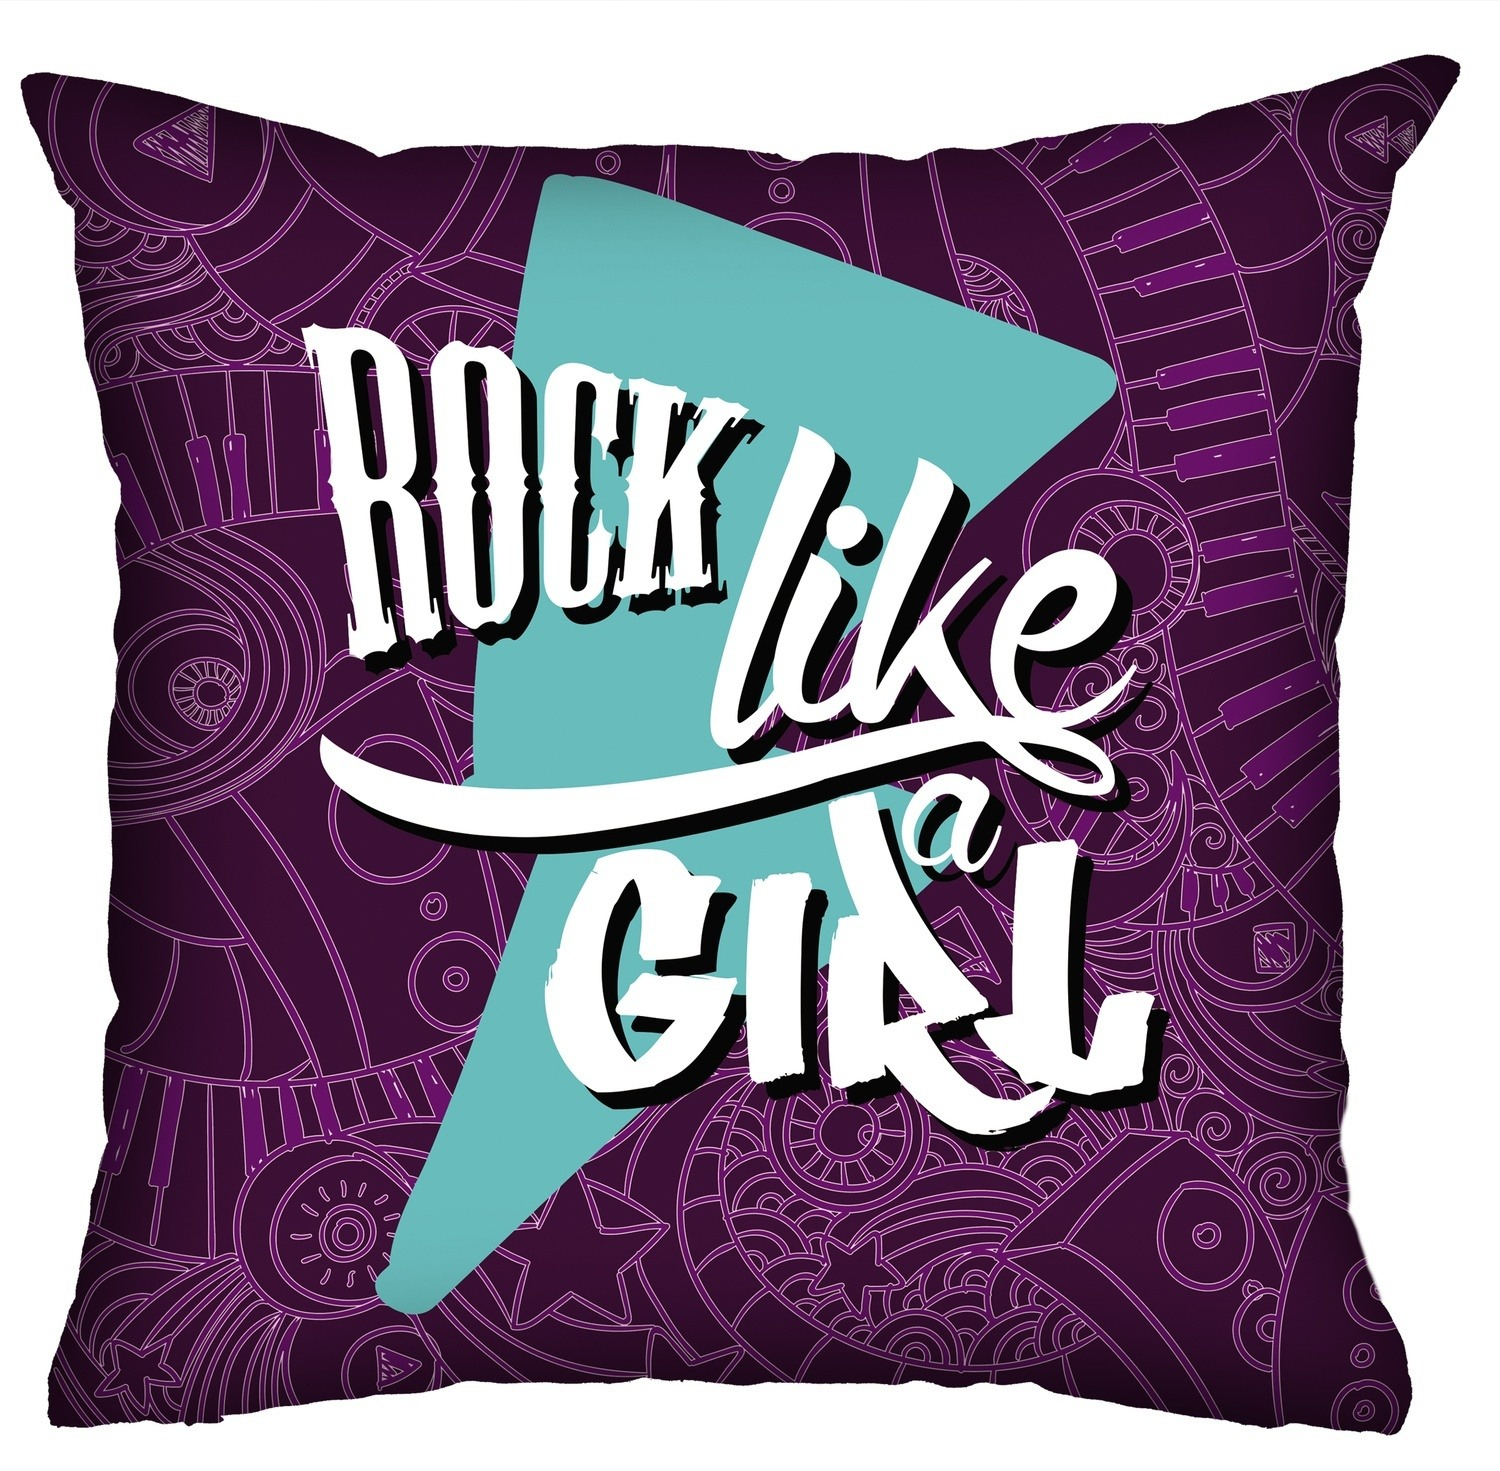 Almofada Rock Use - Rock Like a Girl!